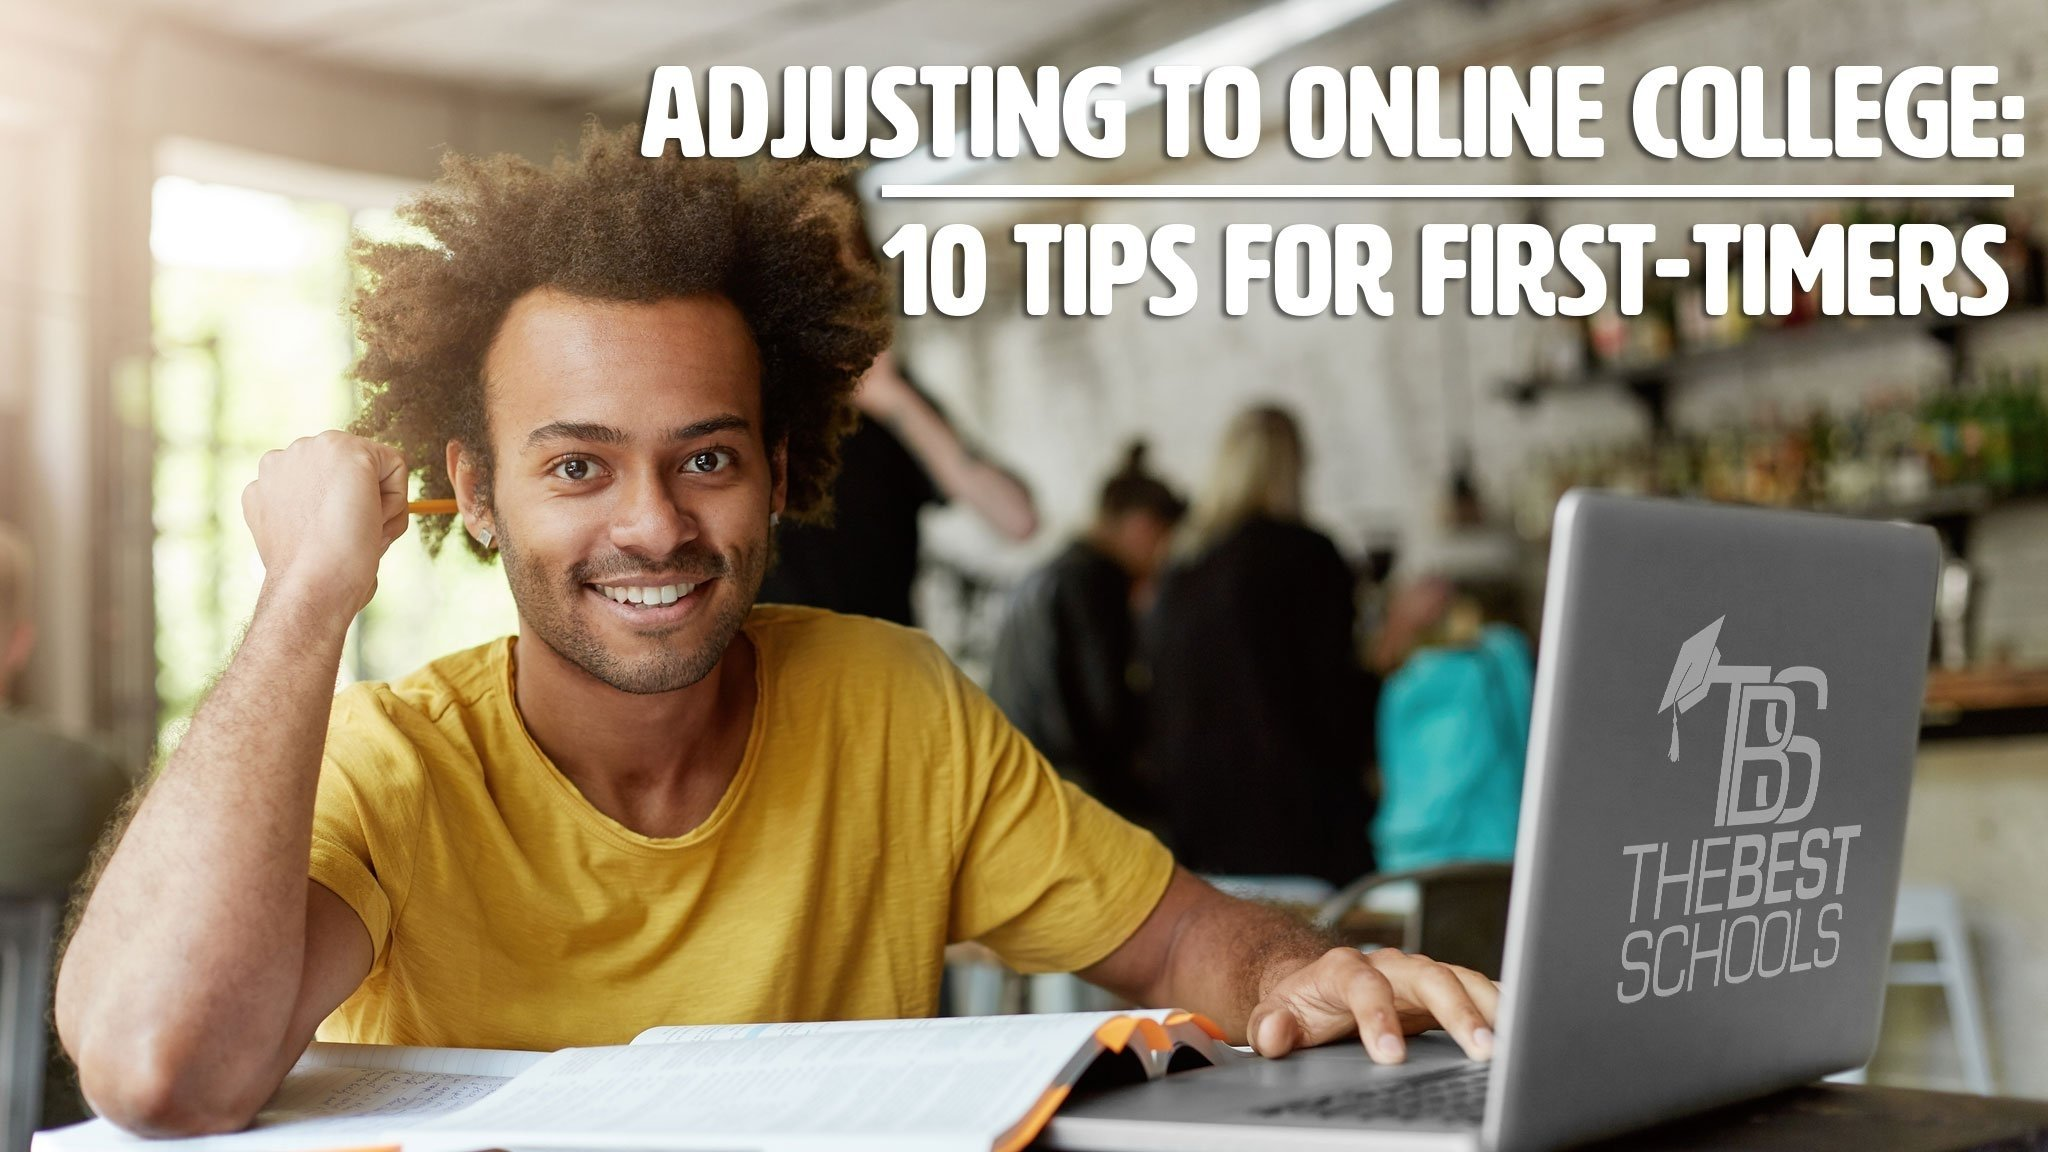 10 Wonderful Is Online College A Good Idea online college and time management the best schools 2020